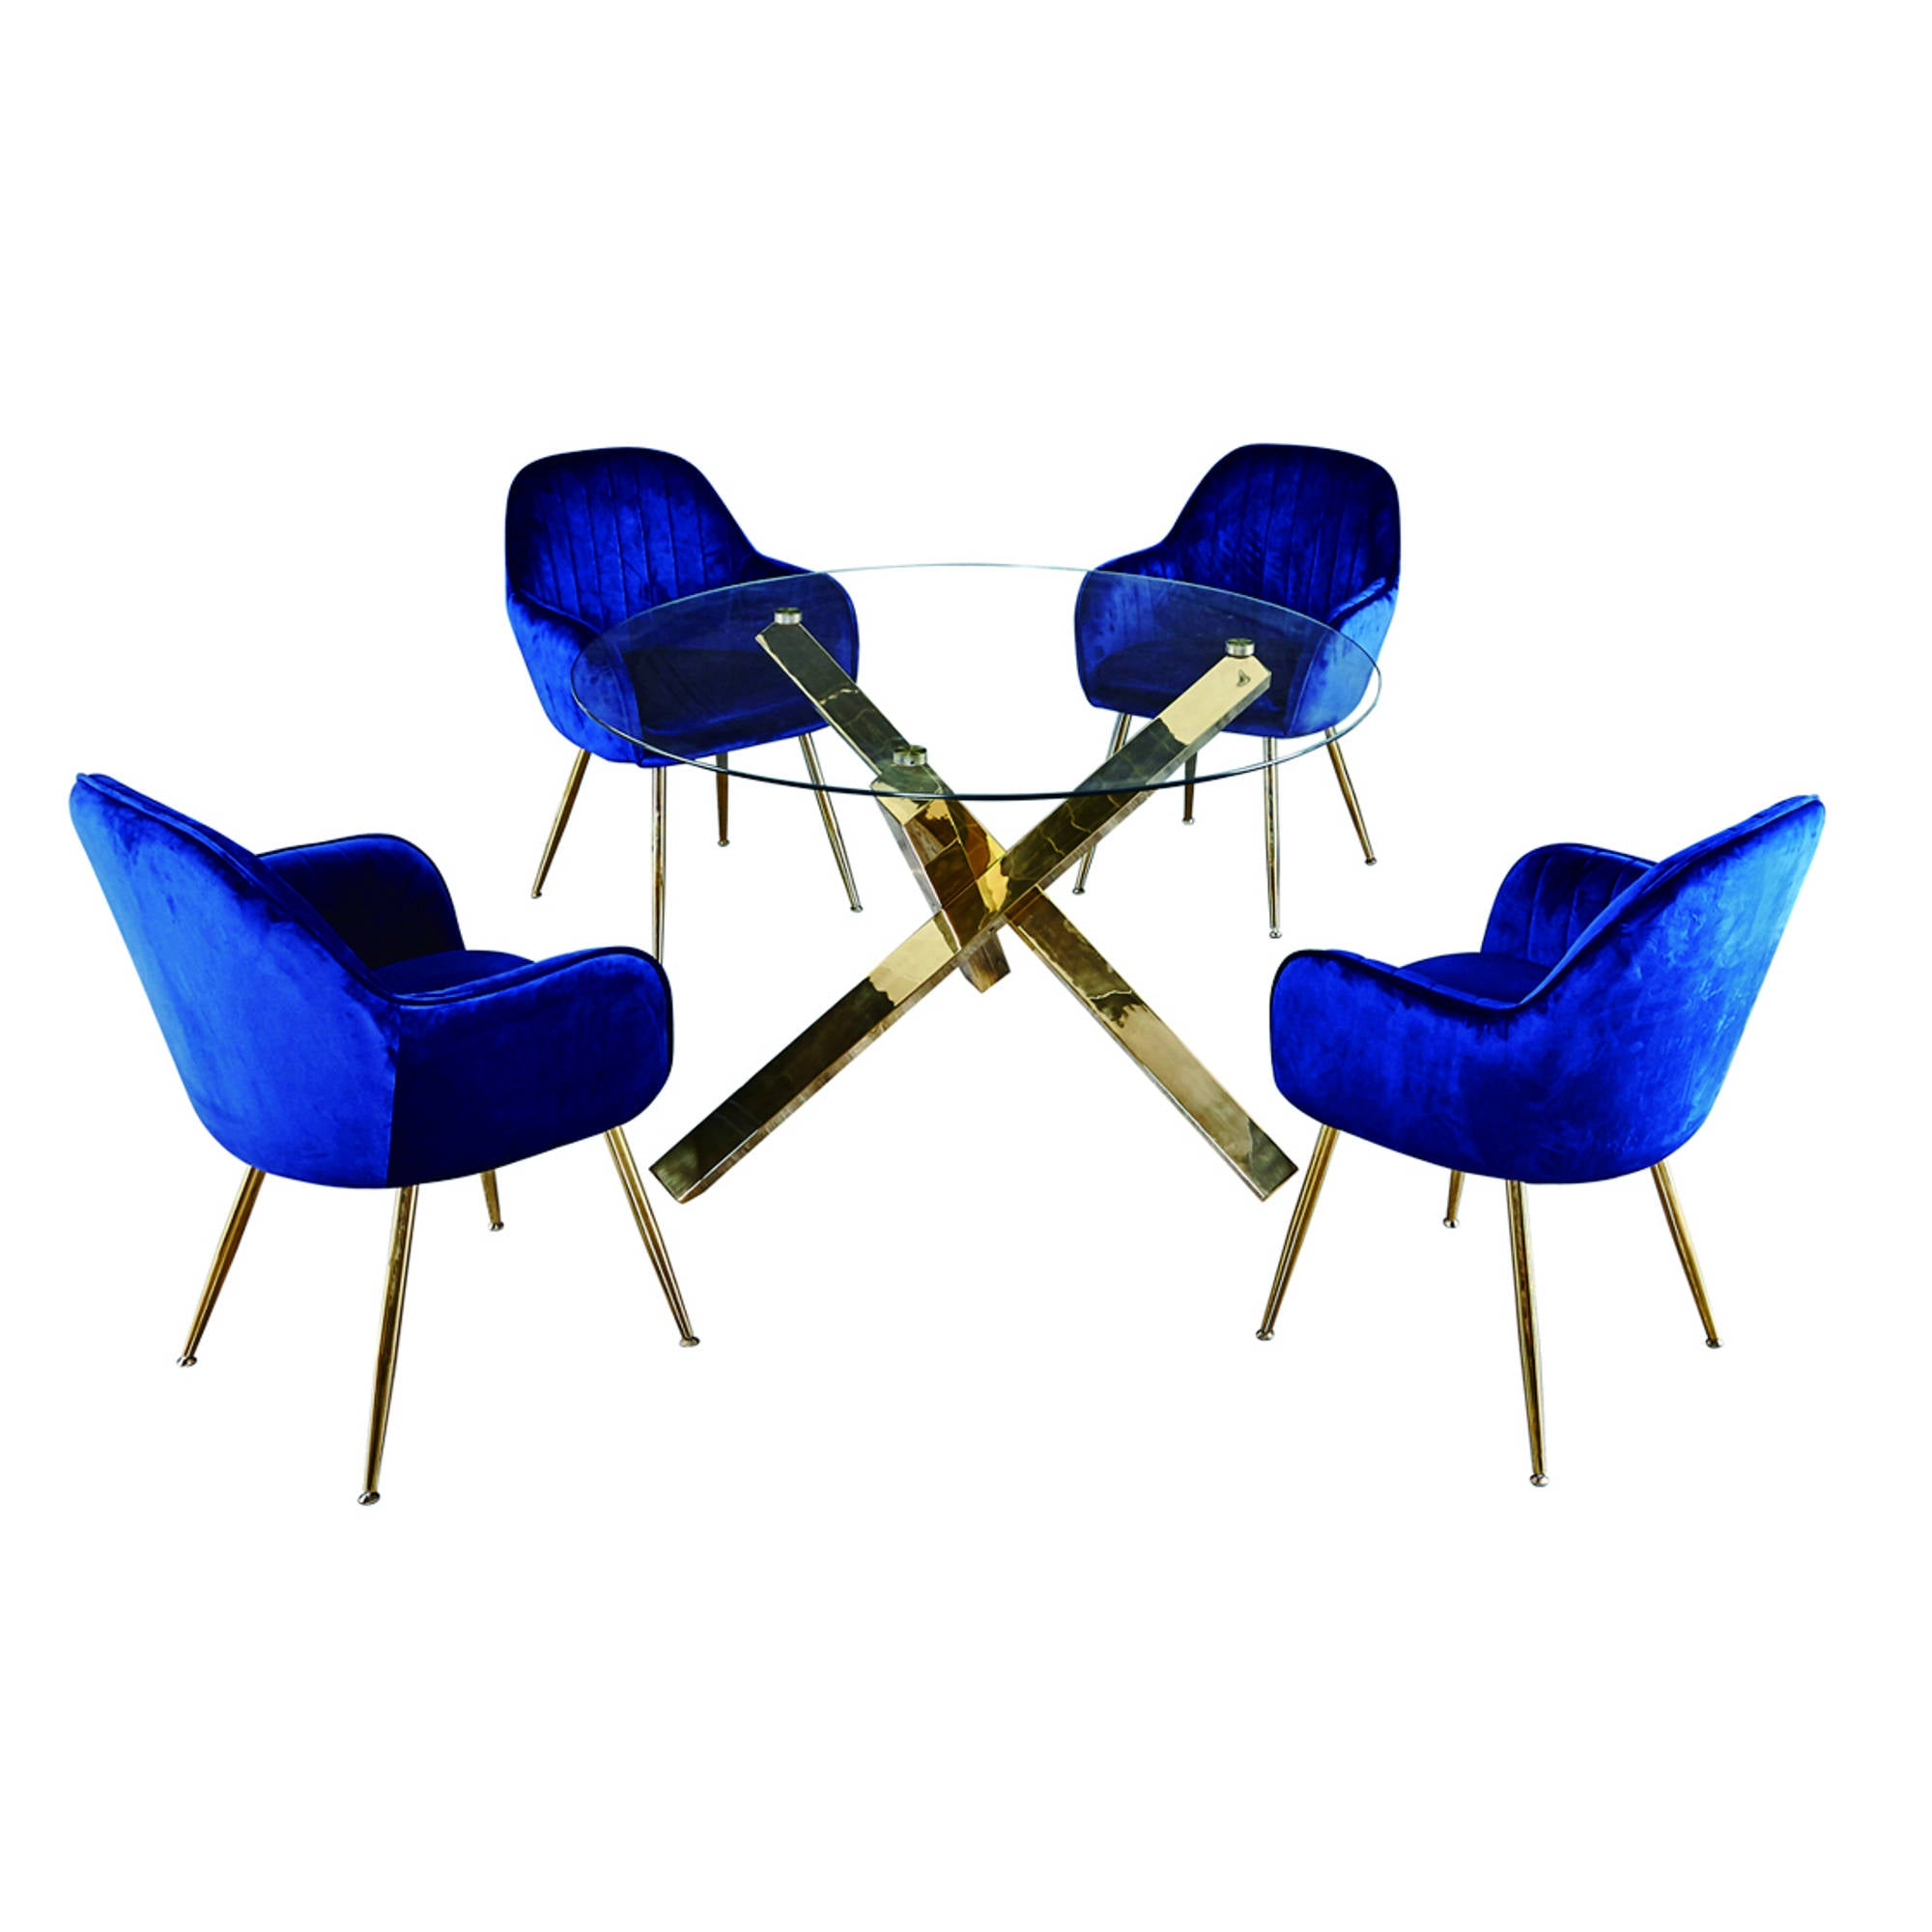 Lares Chair in Royal Blue